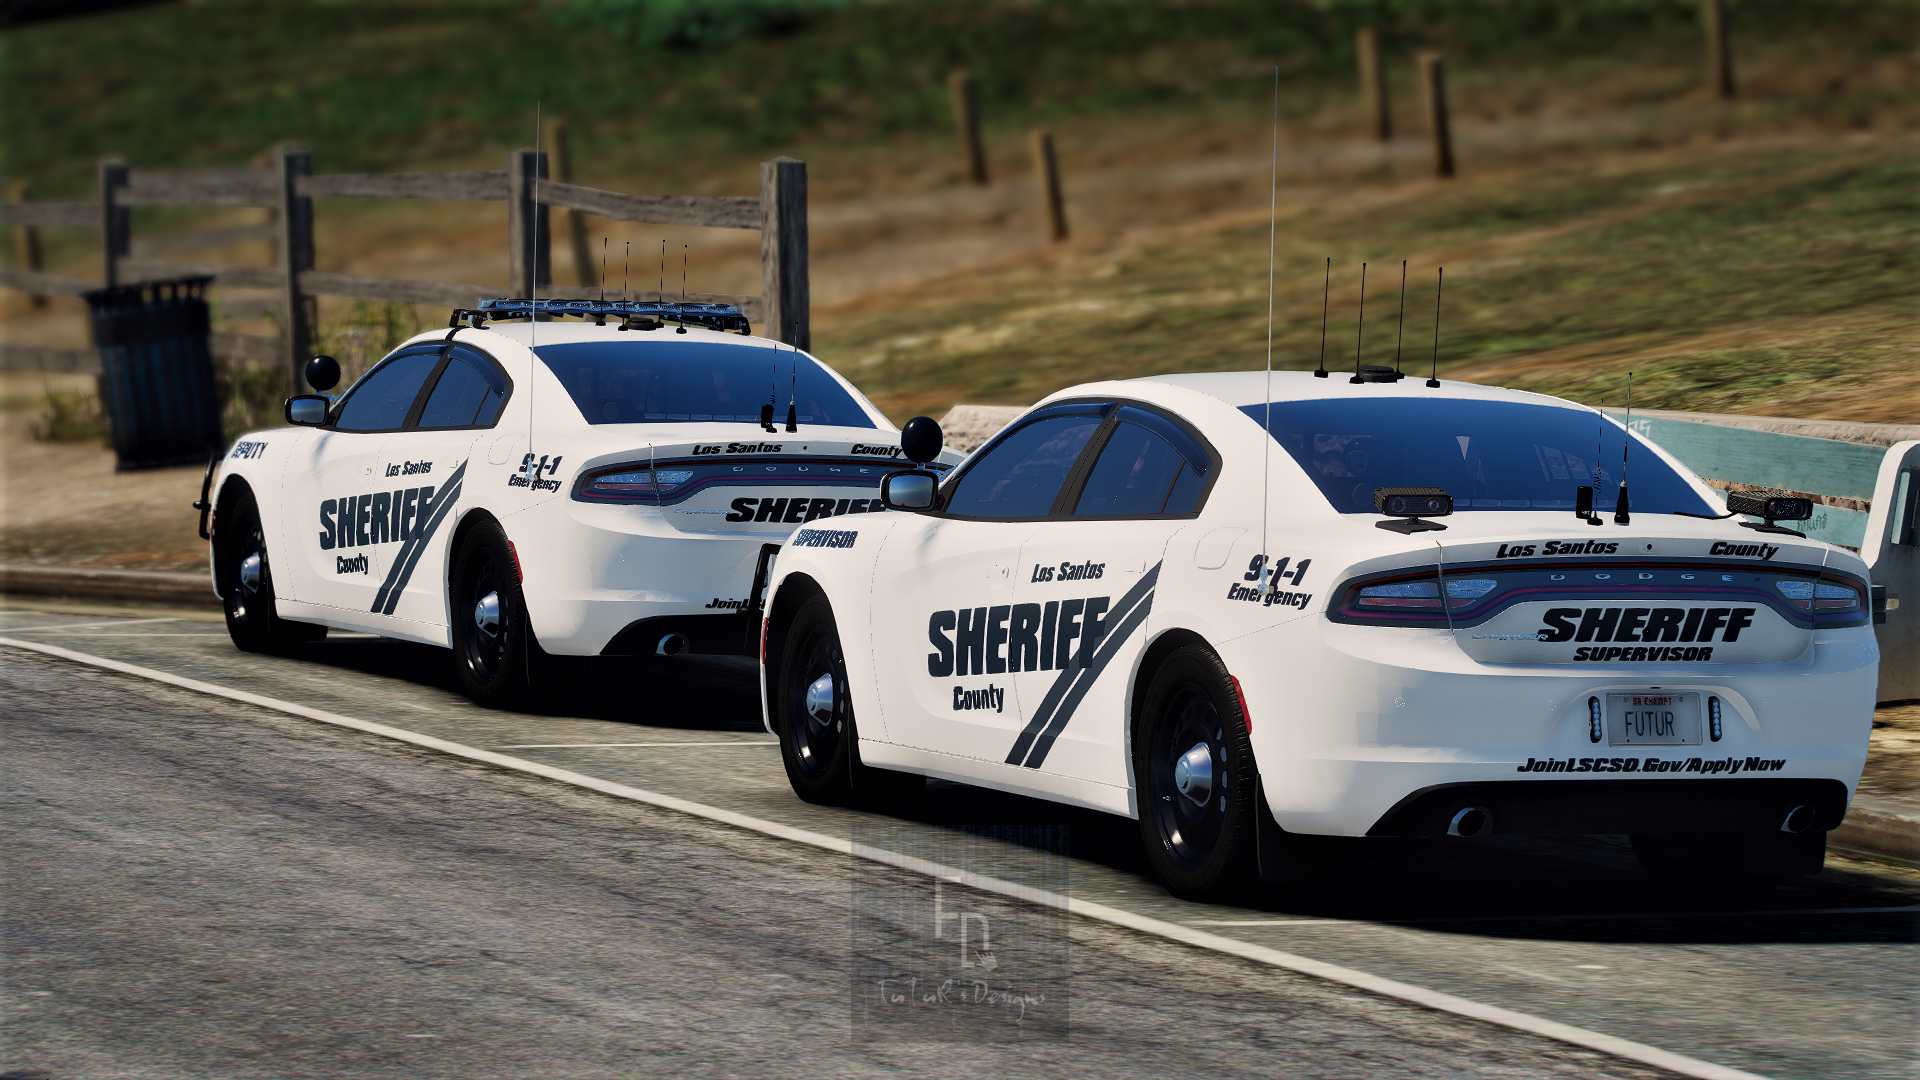 Grand_Theft_Auto_V_10_09_2021_16_43_02.png